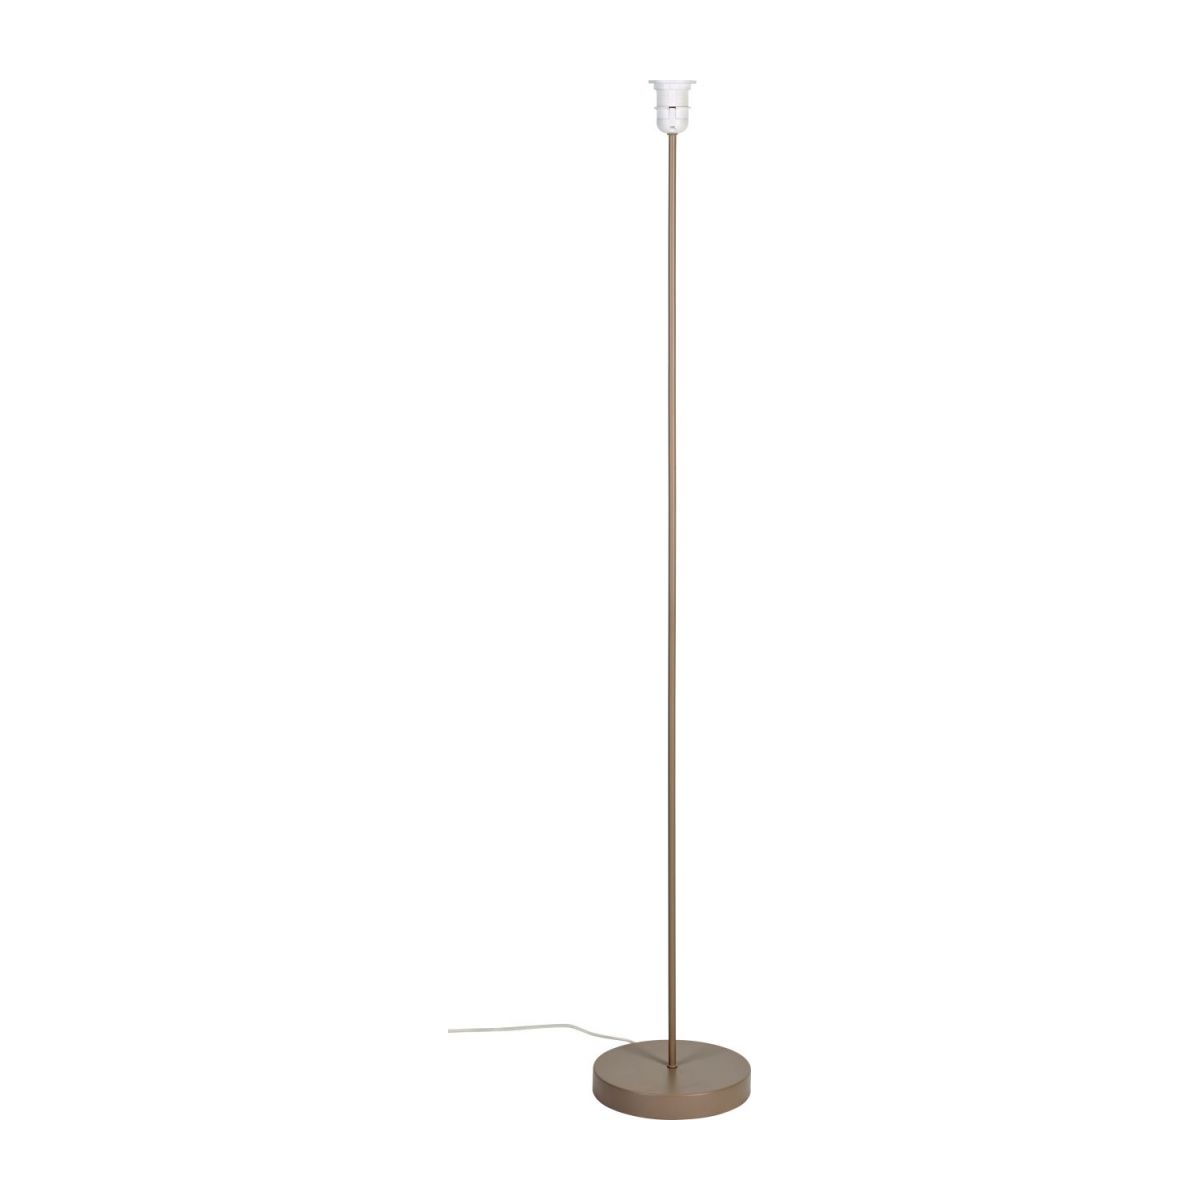 Floor lamp base made of metal, grey n°1